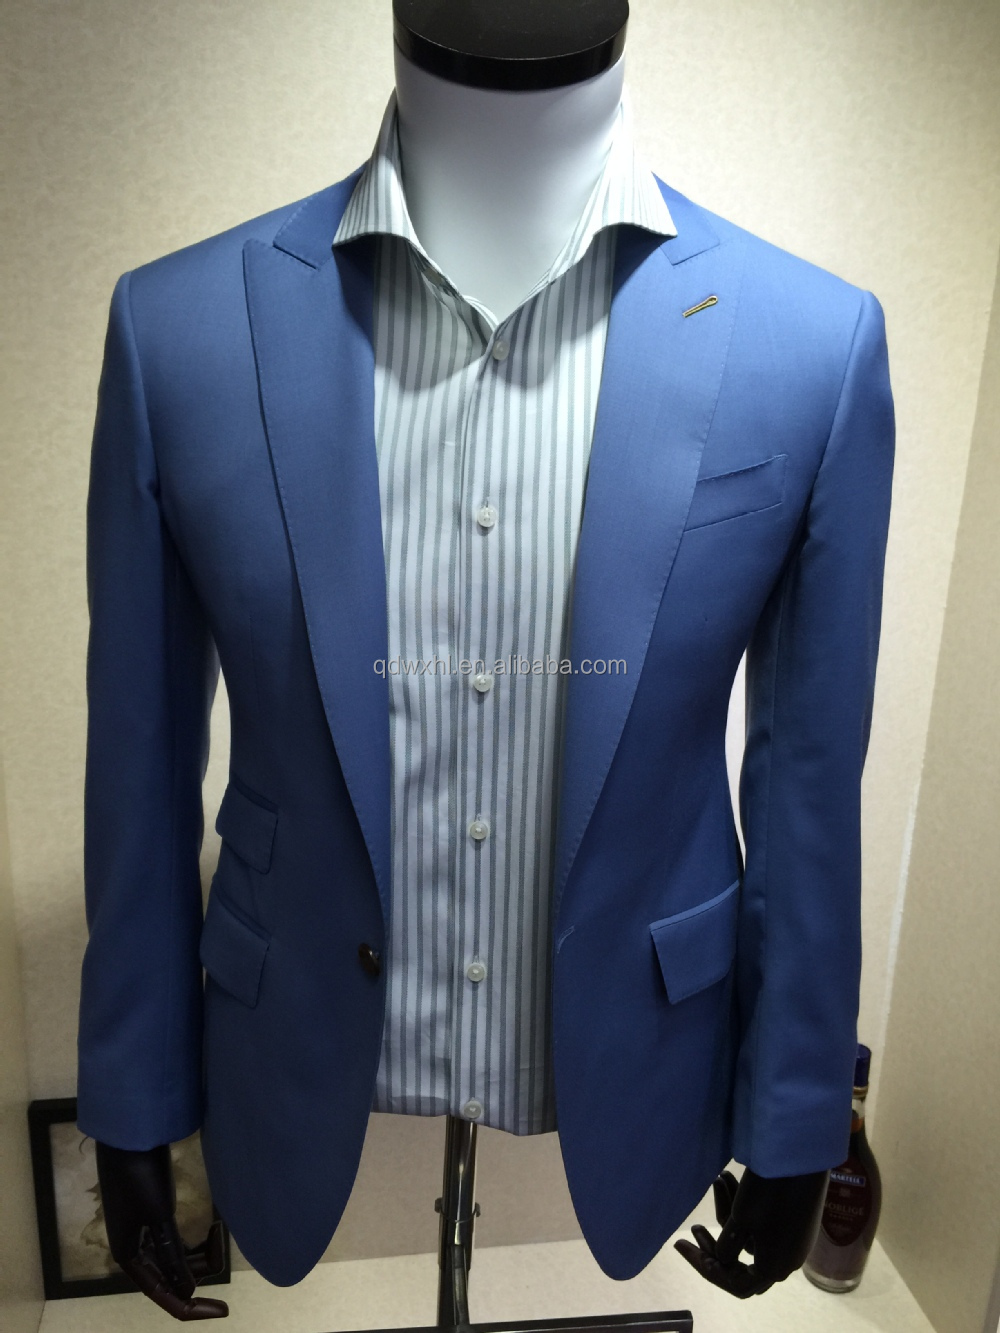 2015 Latest New Stylish Design Slim Fit Classic Mens Suits,Bespoke ...